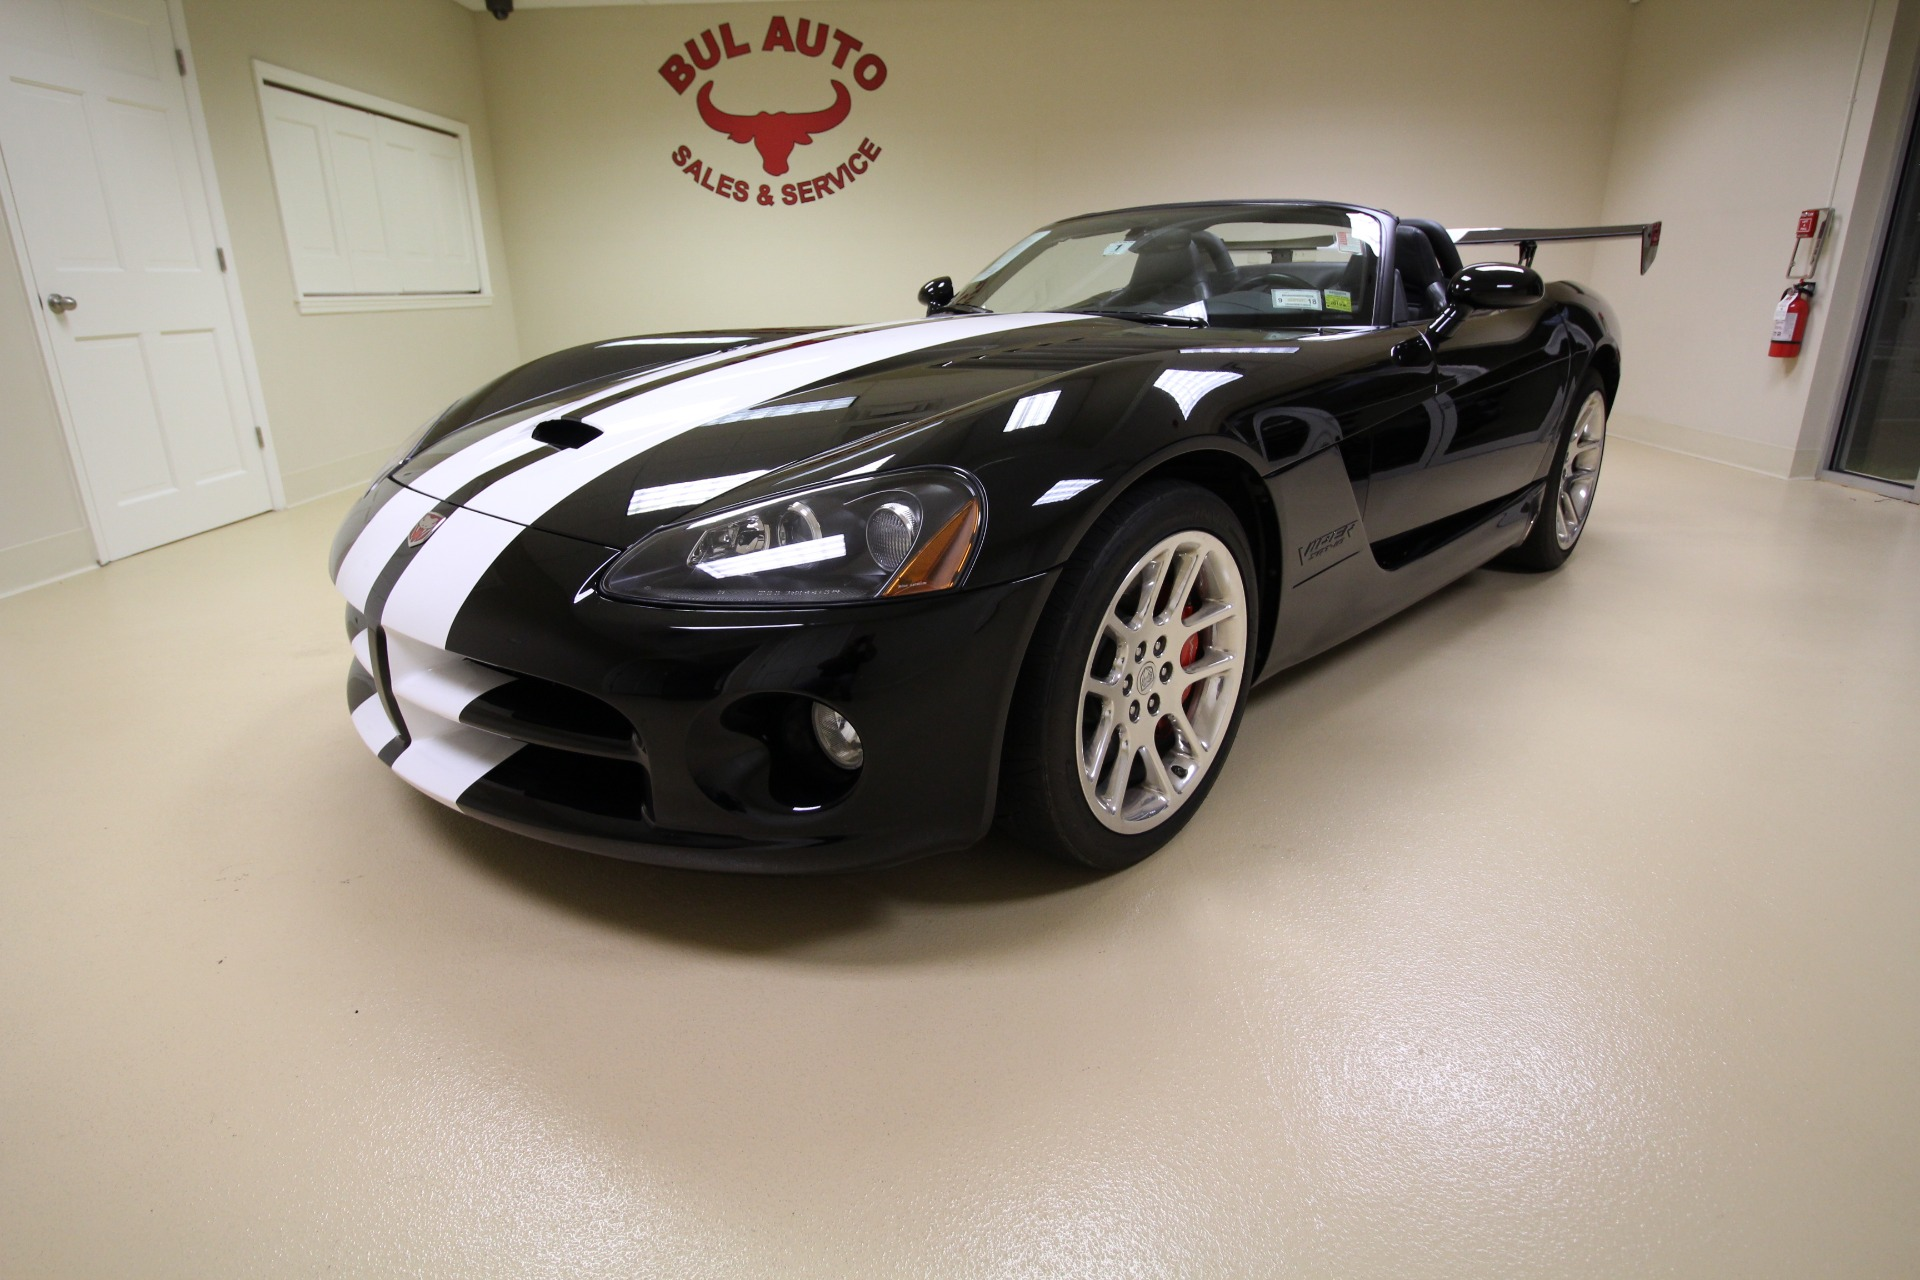 2004 Dodge Viper SRT-10 Stock # 18086 for sale near Albany, NY | NY